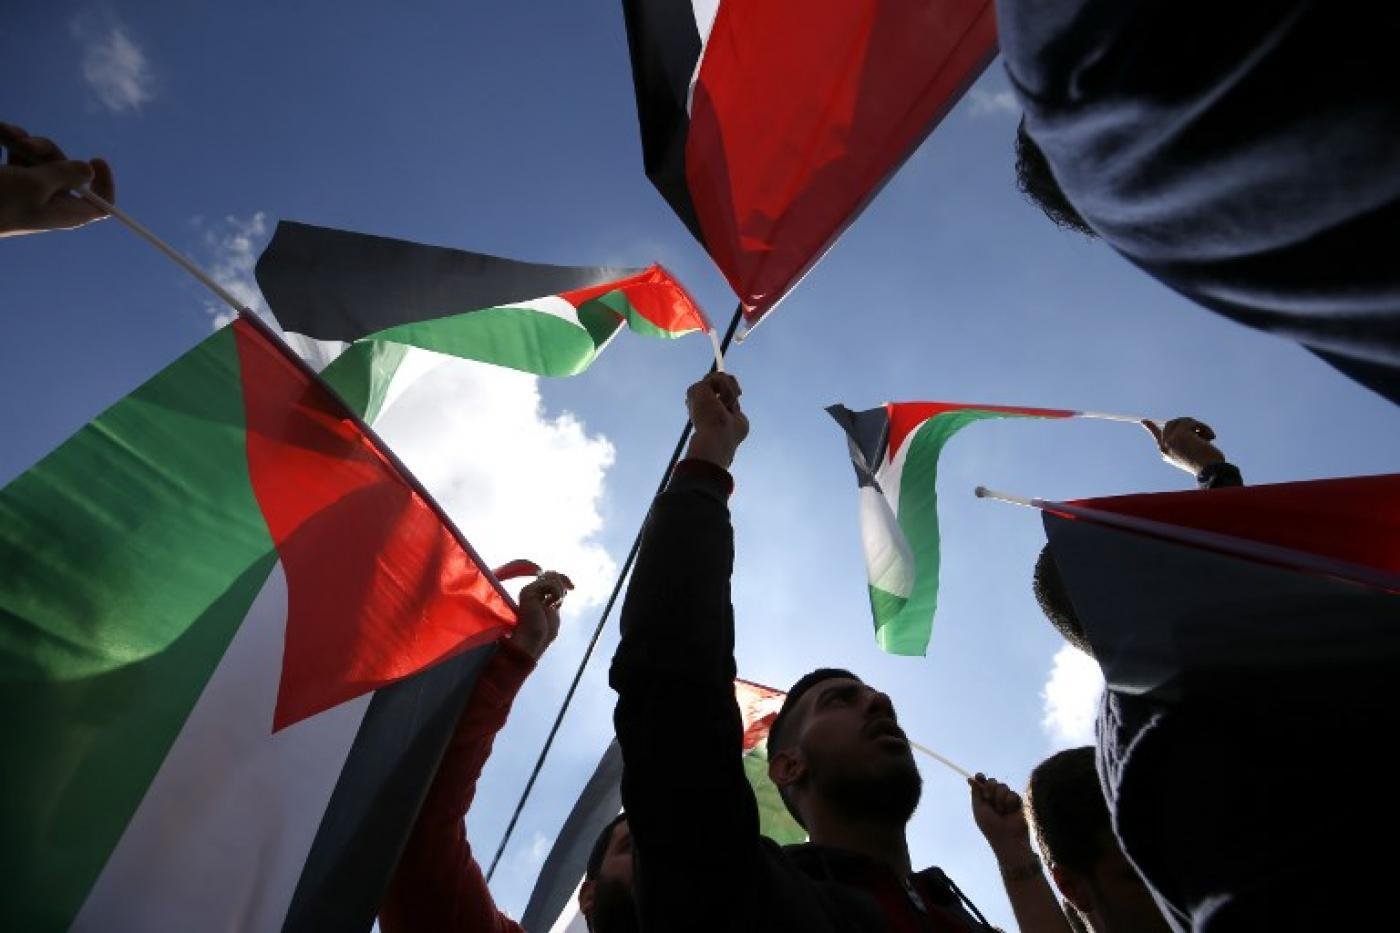 Palestinians hoist their national flag at a protest in Ramallah in November 2018 (AFP)